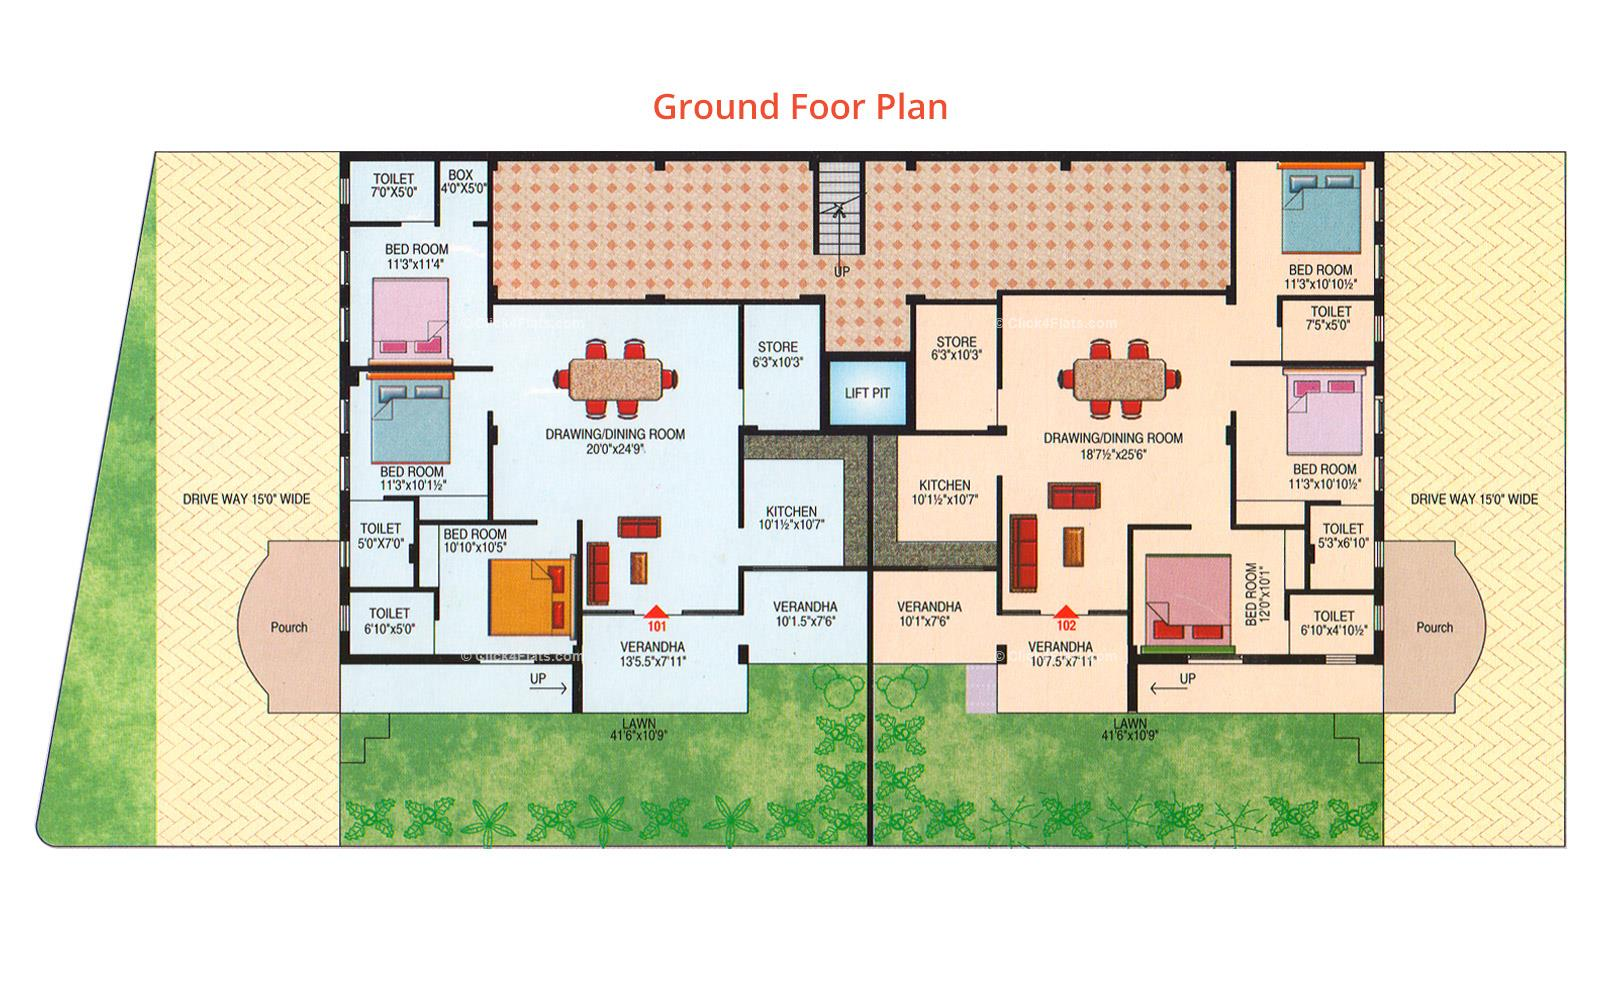 Prestige Chandra Ghanta Ground Floor Plan